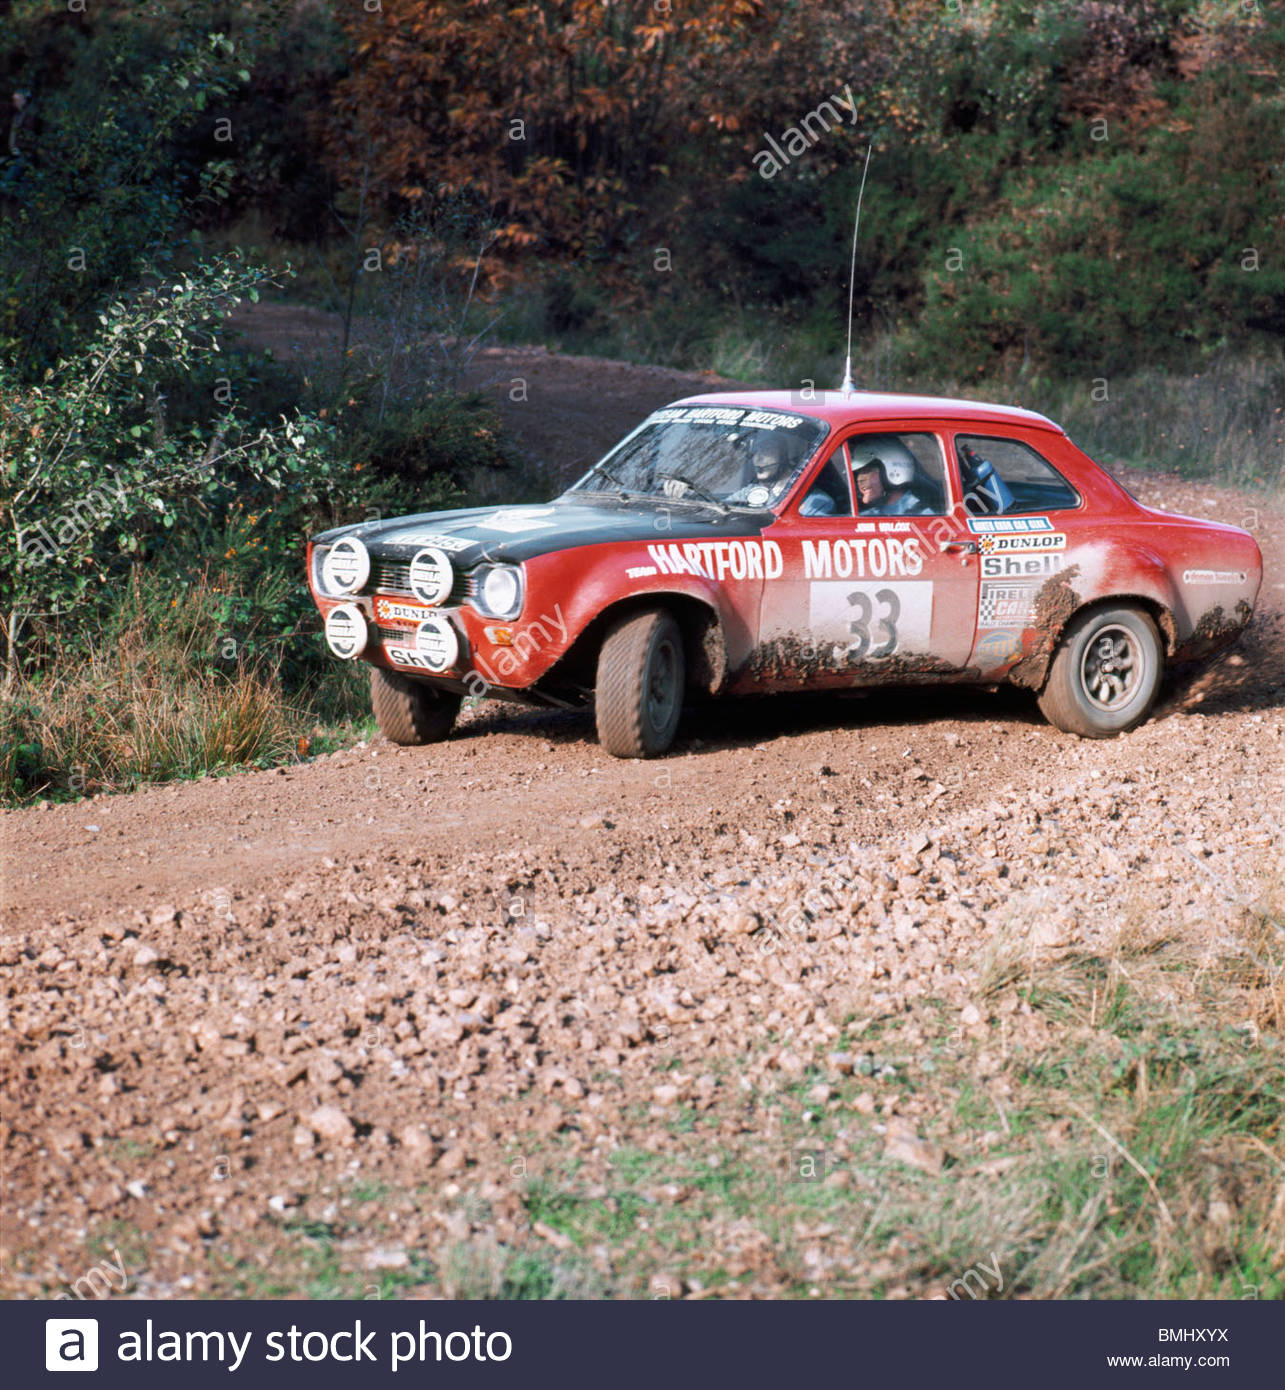 Ford Escort rally car; England, UK – 1976 Stock Photo: 29897838 - Alamy